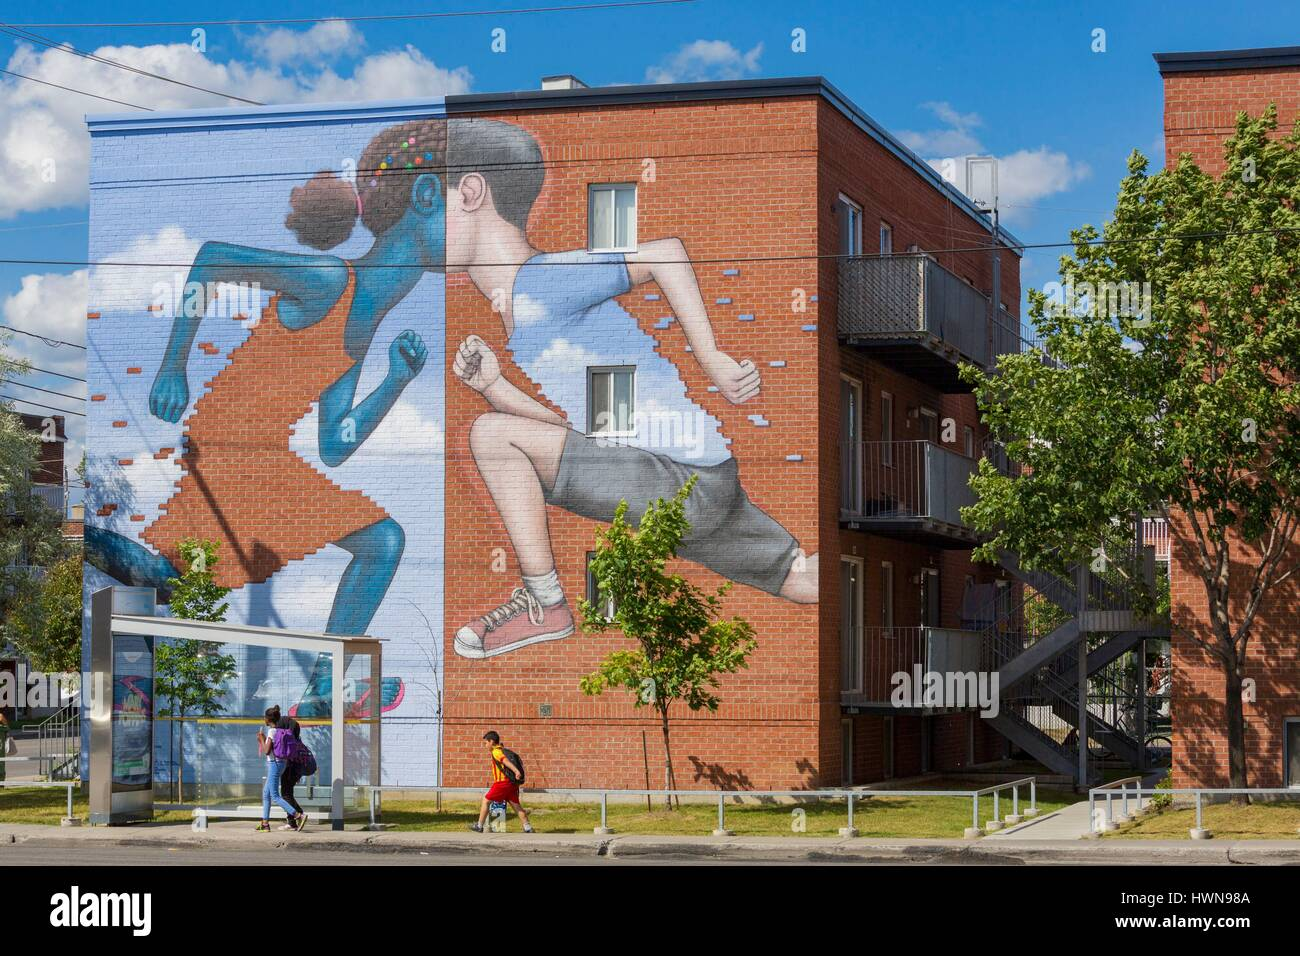 Canada, Province of Quebec, Montreal, Comme un jeu d'enfant by Seth for MU in 2015 SETH (Julien Malland), - Stock Image